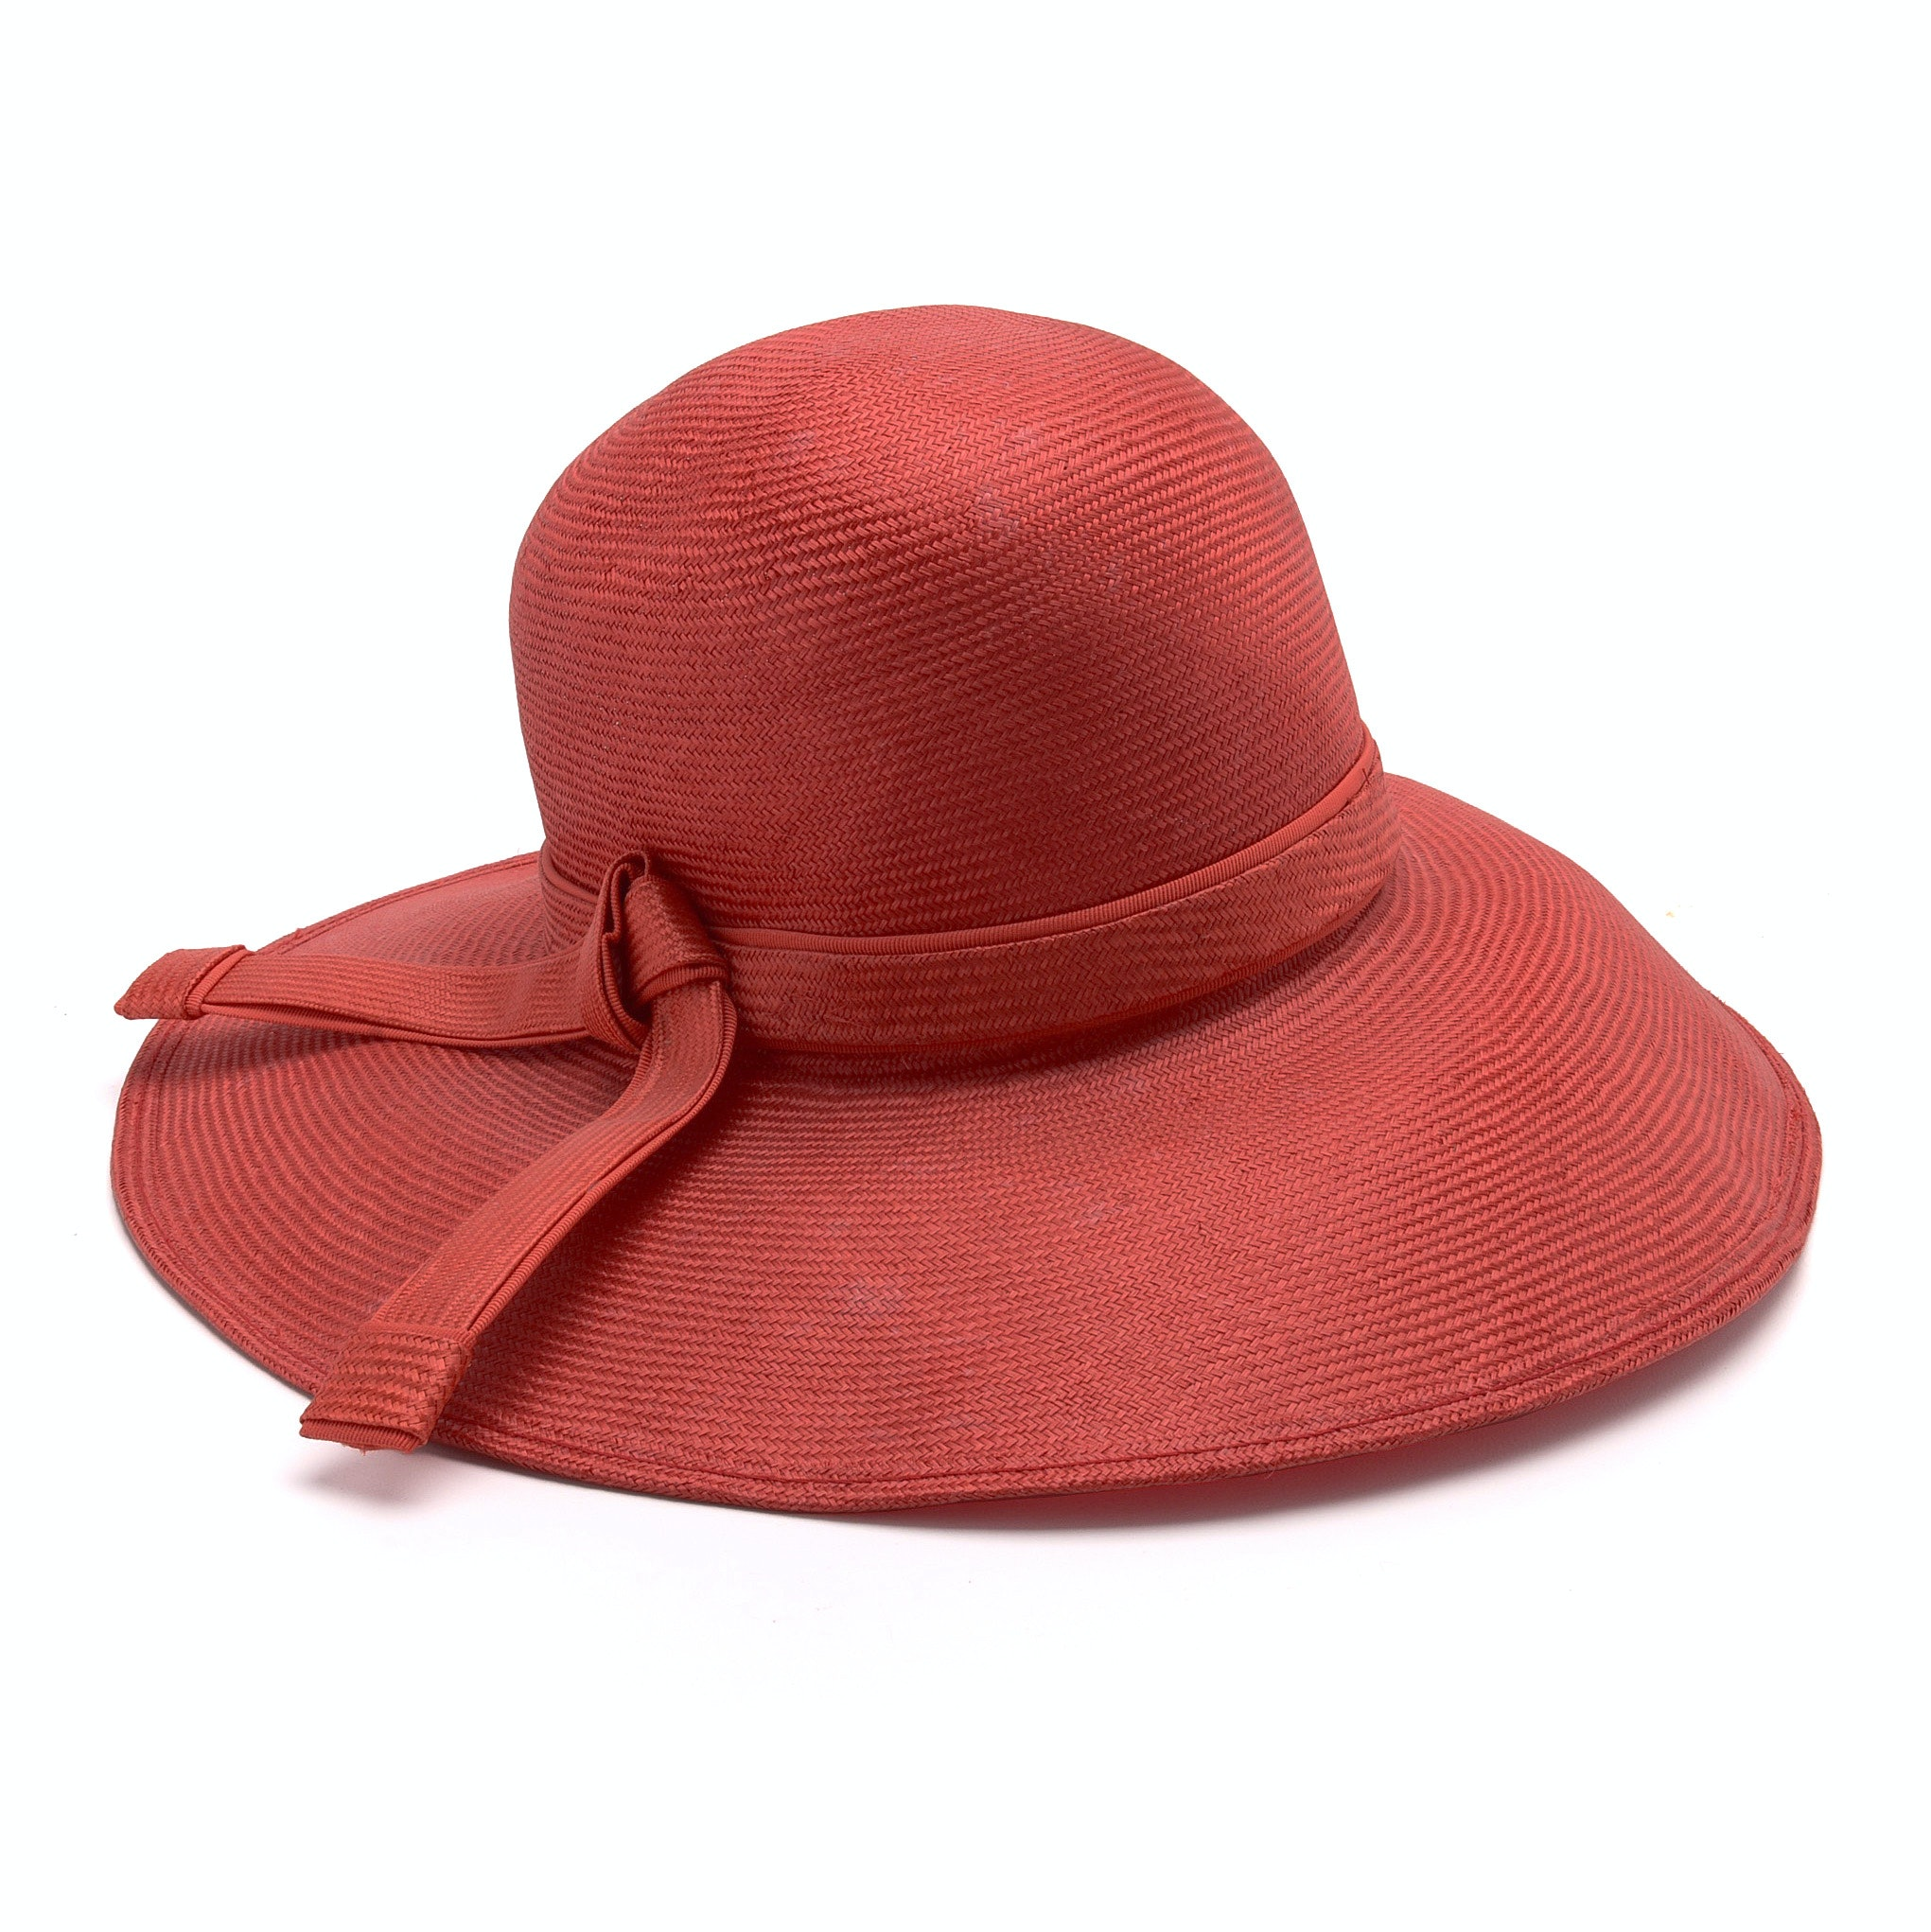 Aldolfo II of Paris and New York Red Cellophane Hat Trimmed in Grosgrain Ribbon